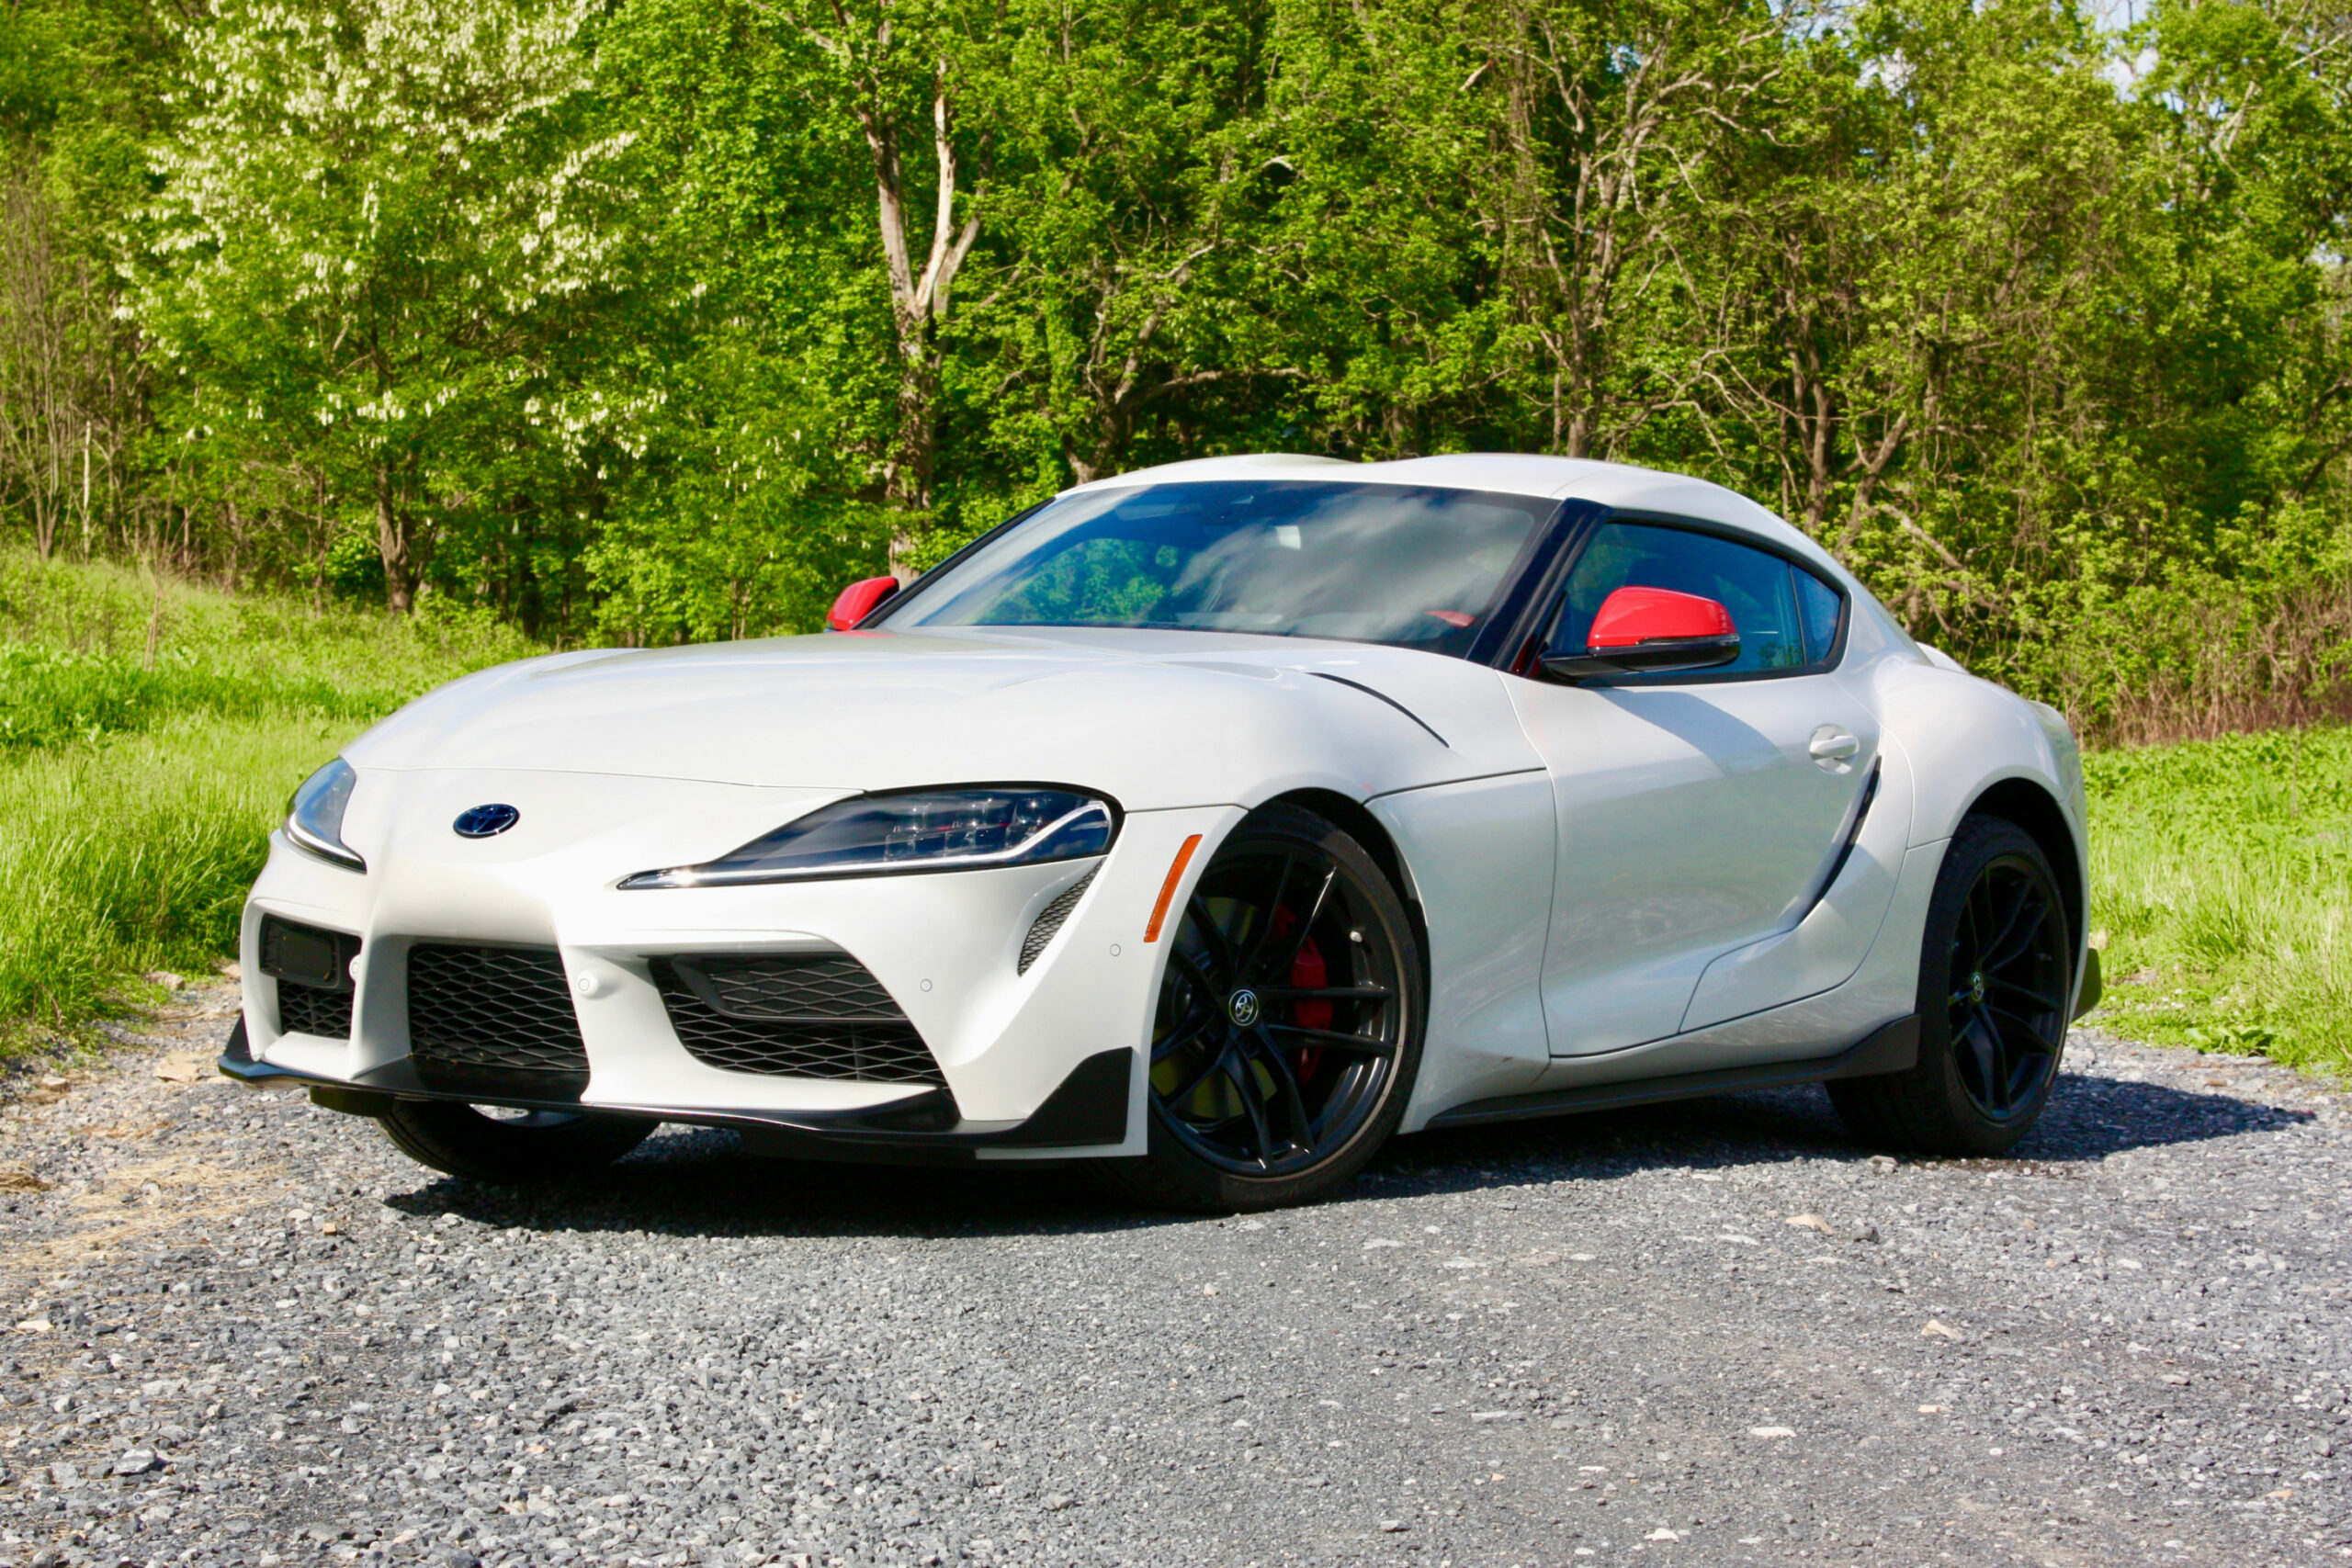 Speed Test Pictures Of The 2022 Toyota Supra